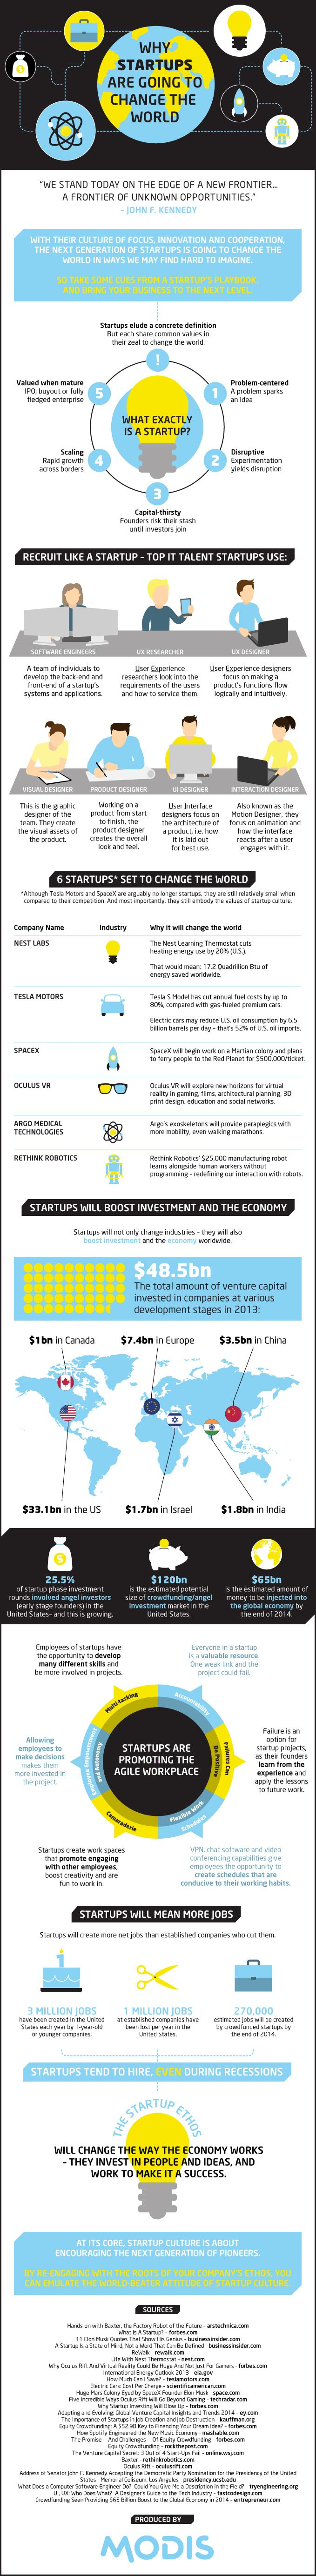 Why #Startups Will Change The World.